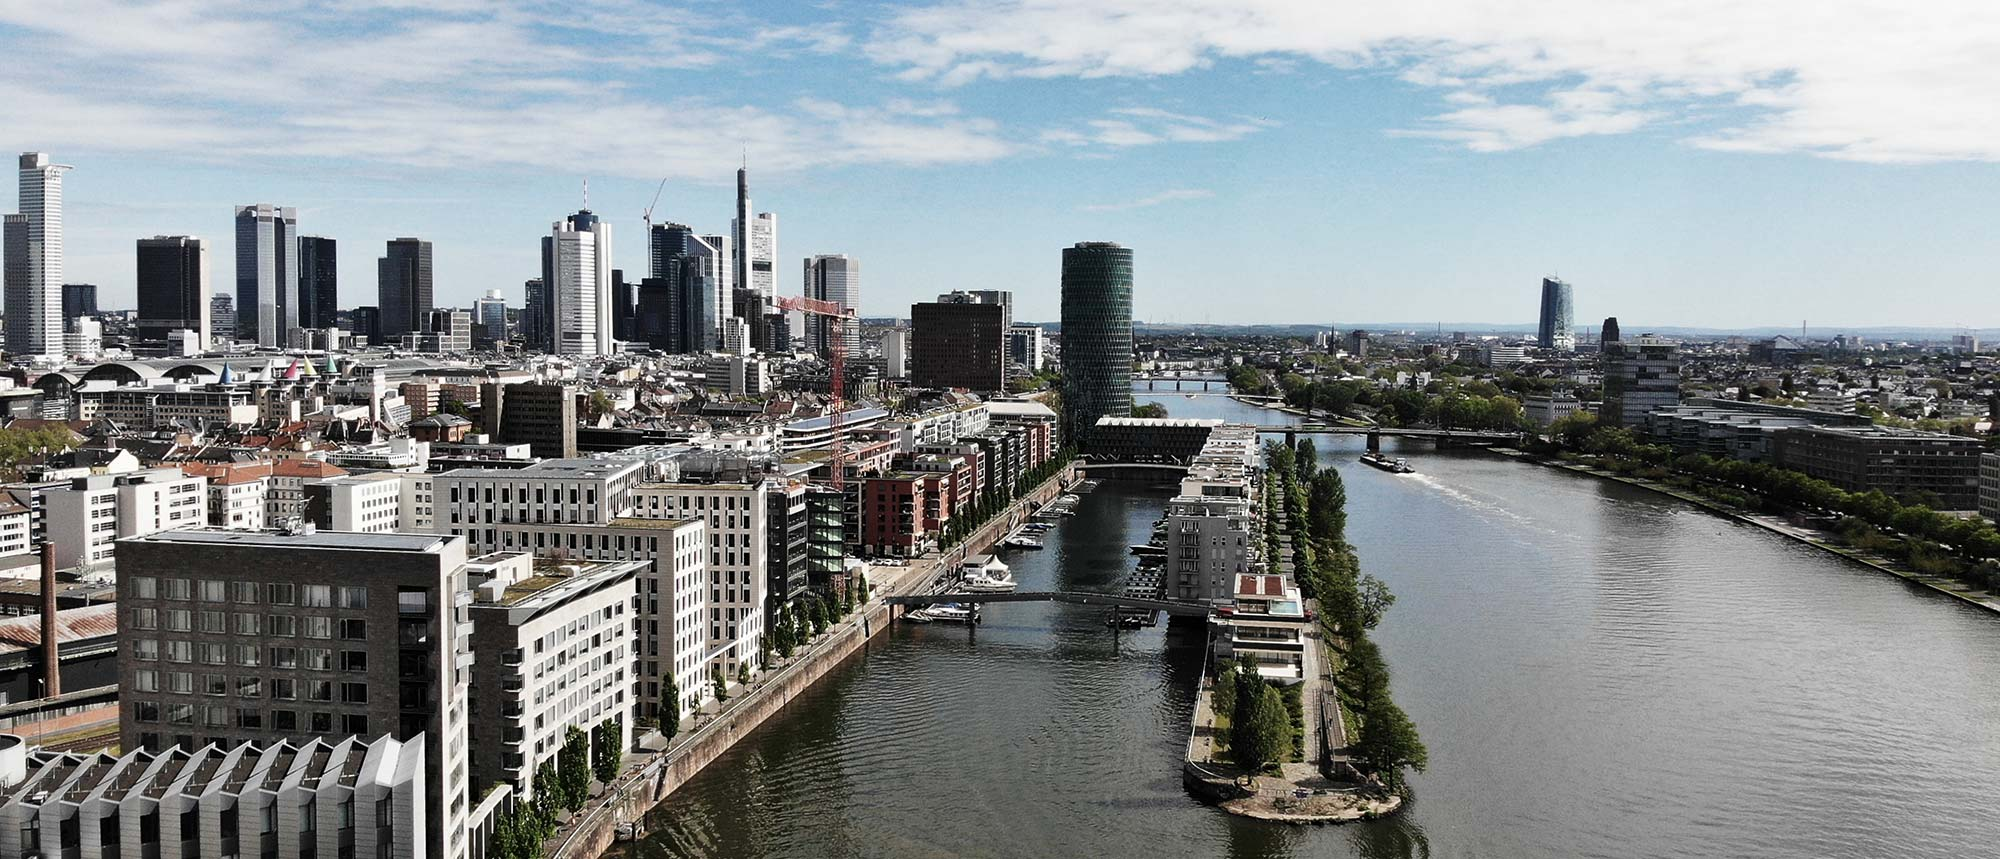 Flying over Frankfurt - What kind of permissions are needed?